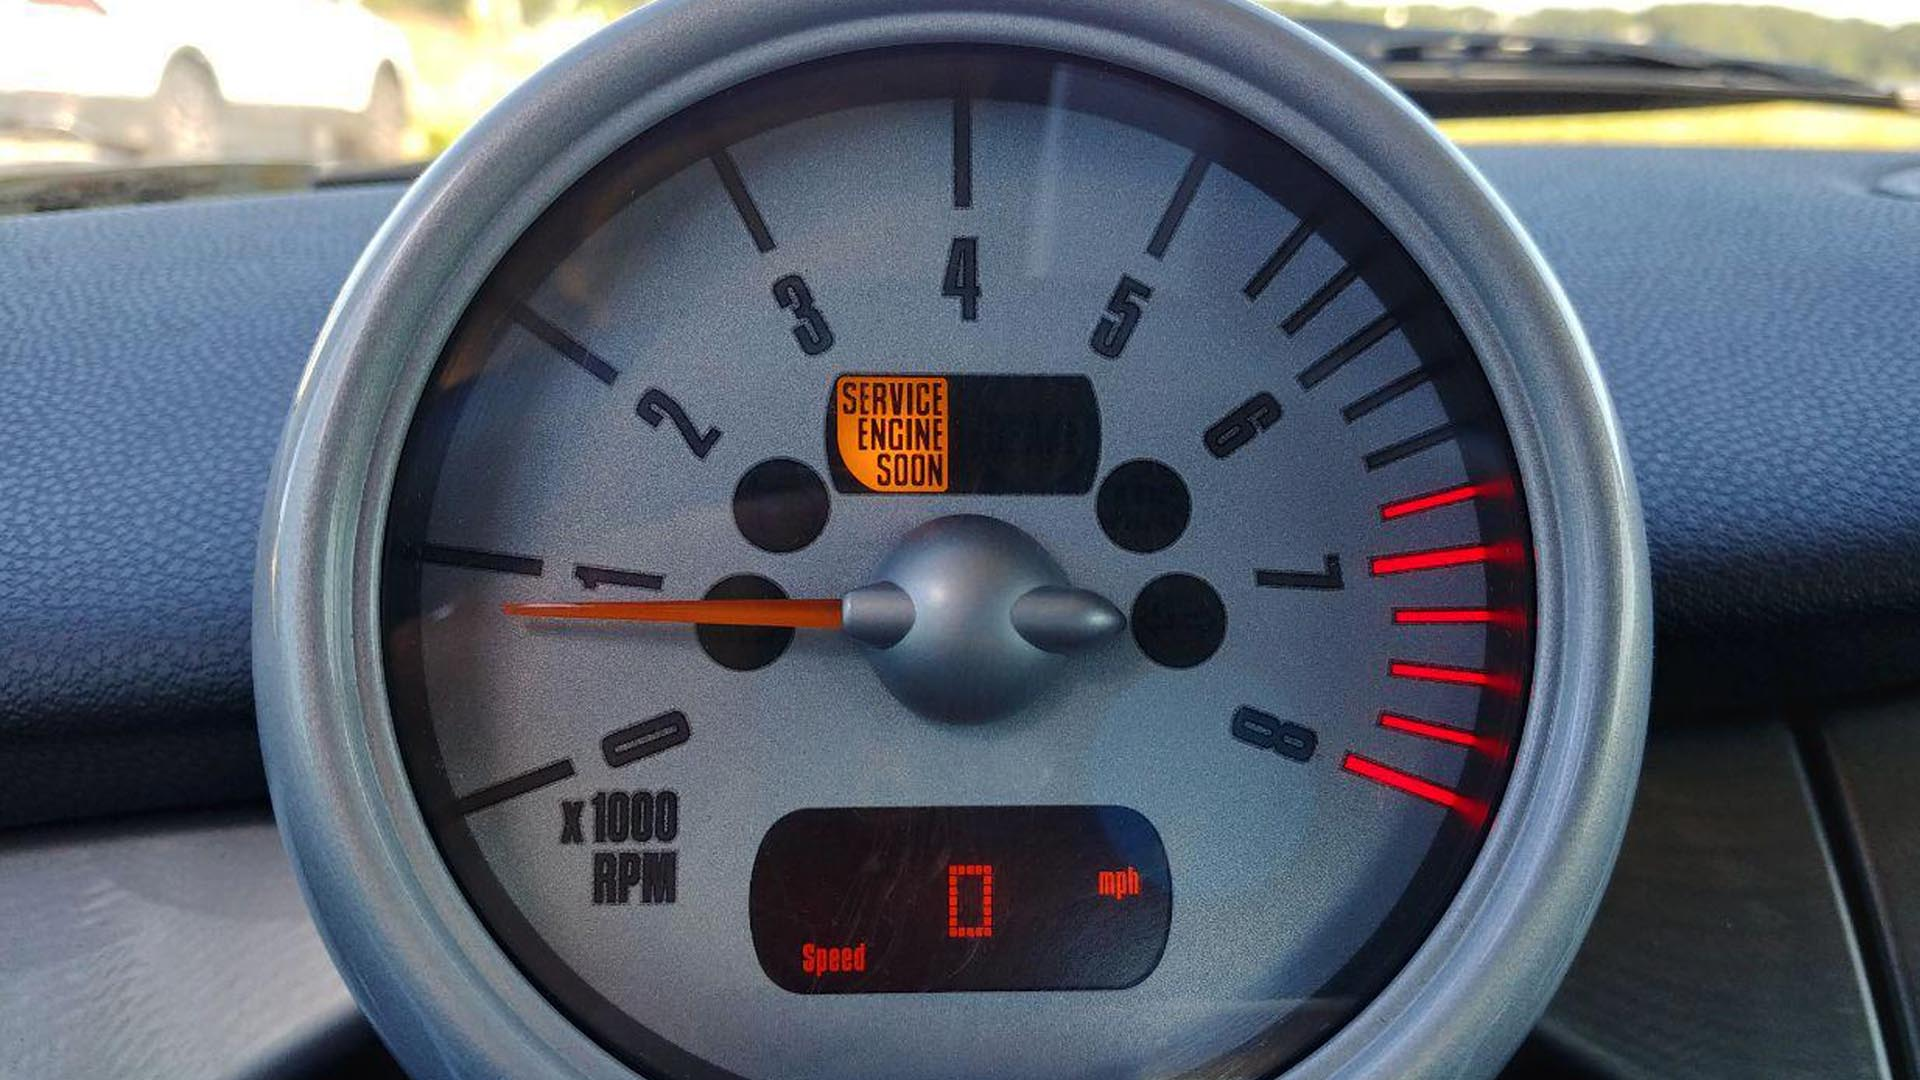 Is Your Check Engine Light On? Here Are 5 Reasons Why And What To Do Next